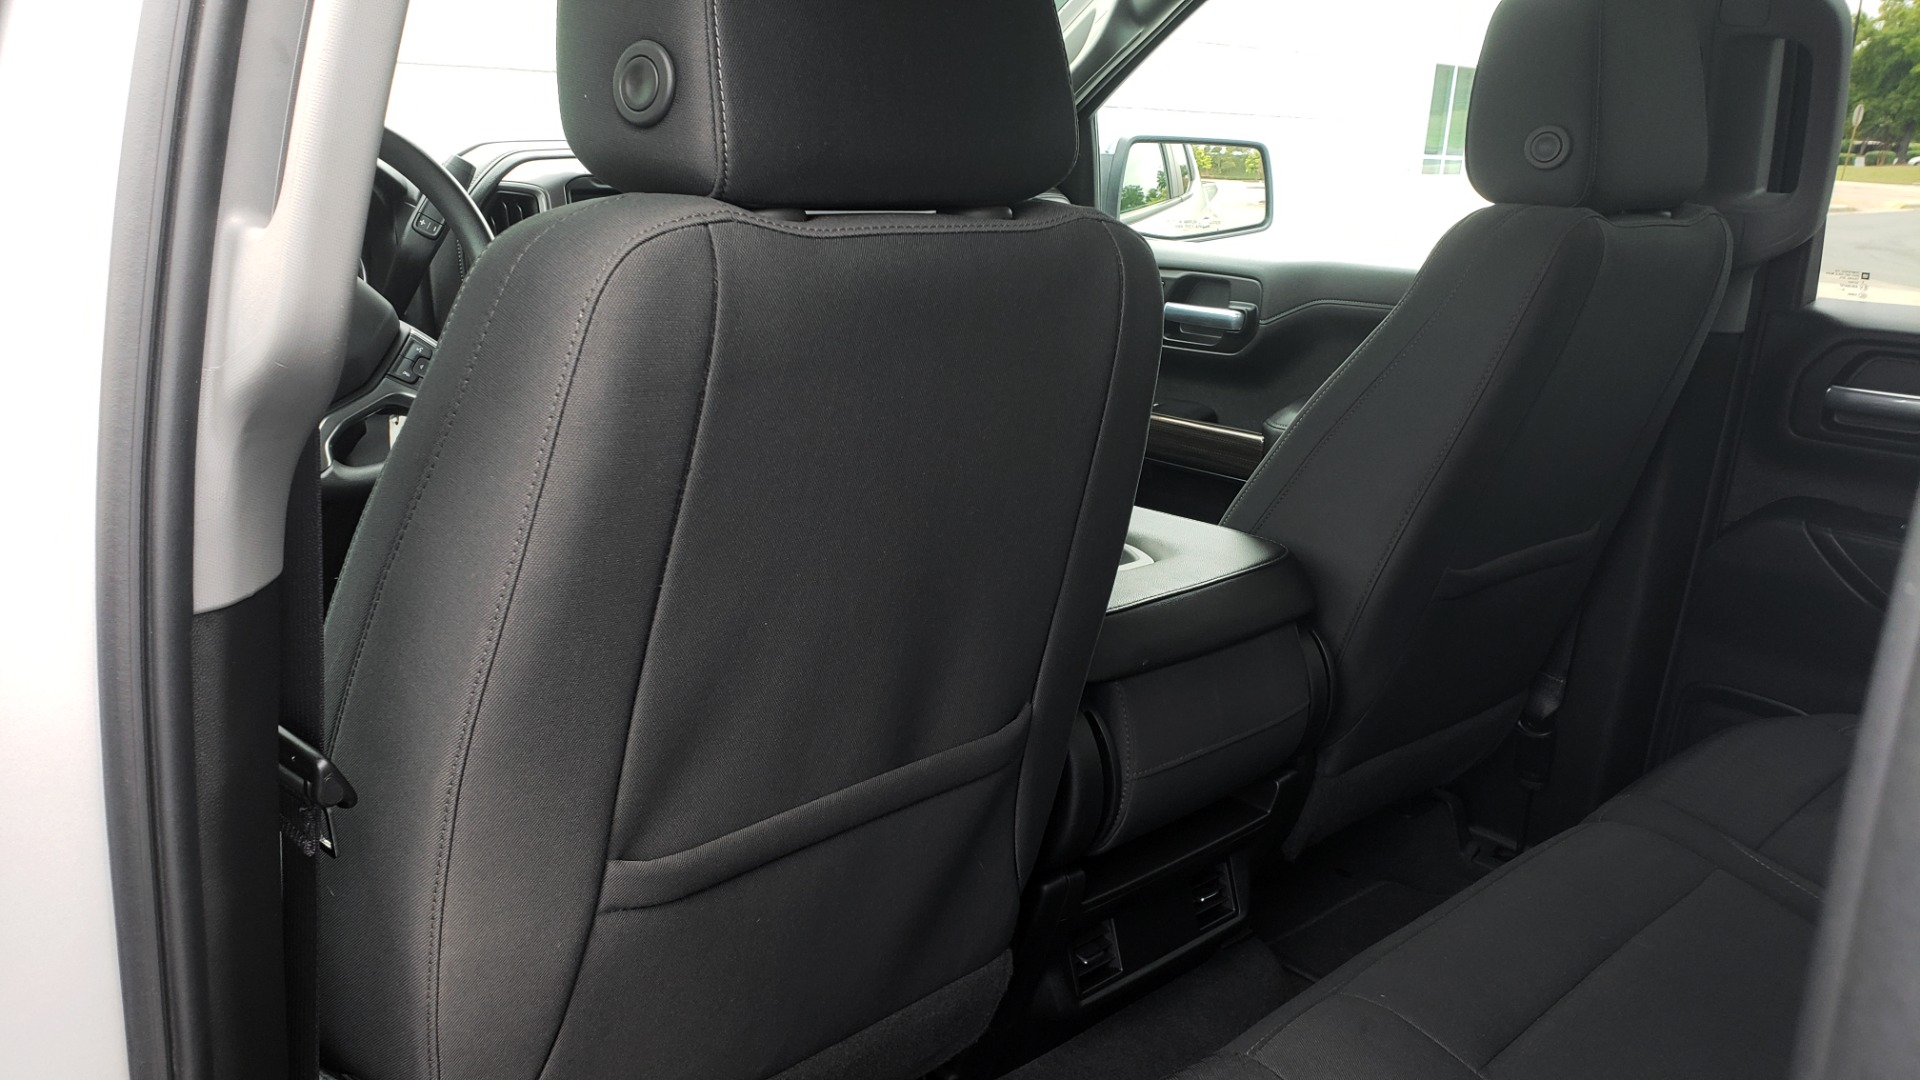 Used 2020 Chevrolet SILVERADO 1500 LT 4WD DOUBLECAB 147 WB / 5.3L V8 / BEDLINER / REARVIEW for sale $41,995 at Formula Imports in Charlotte NC 28227 54